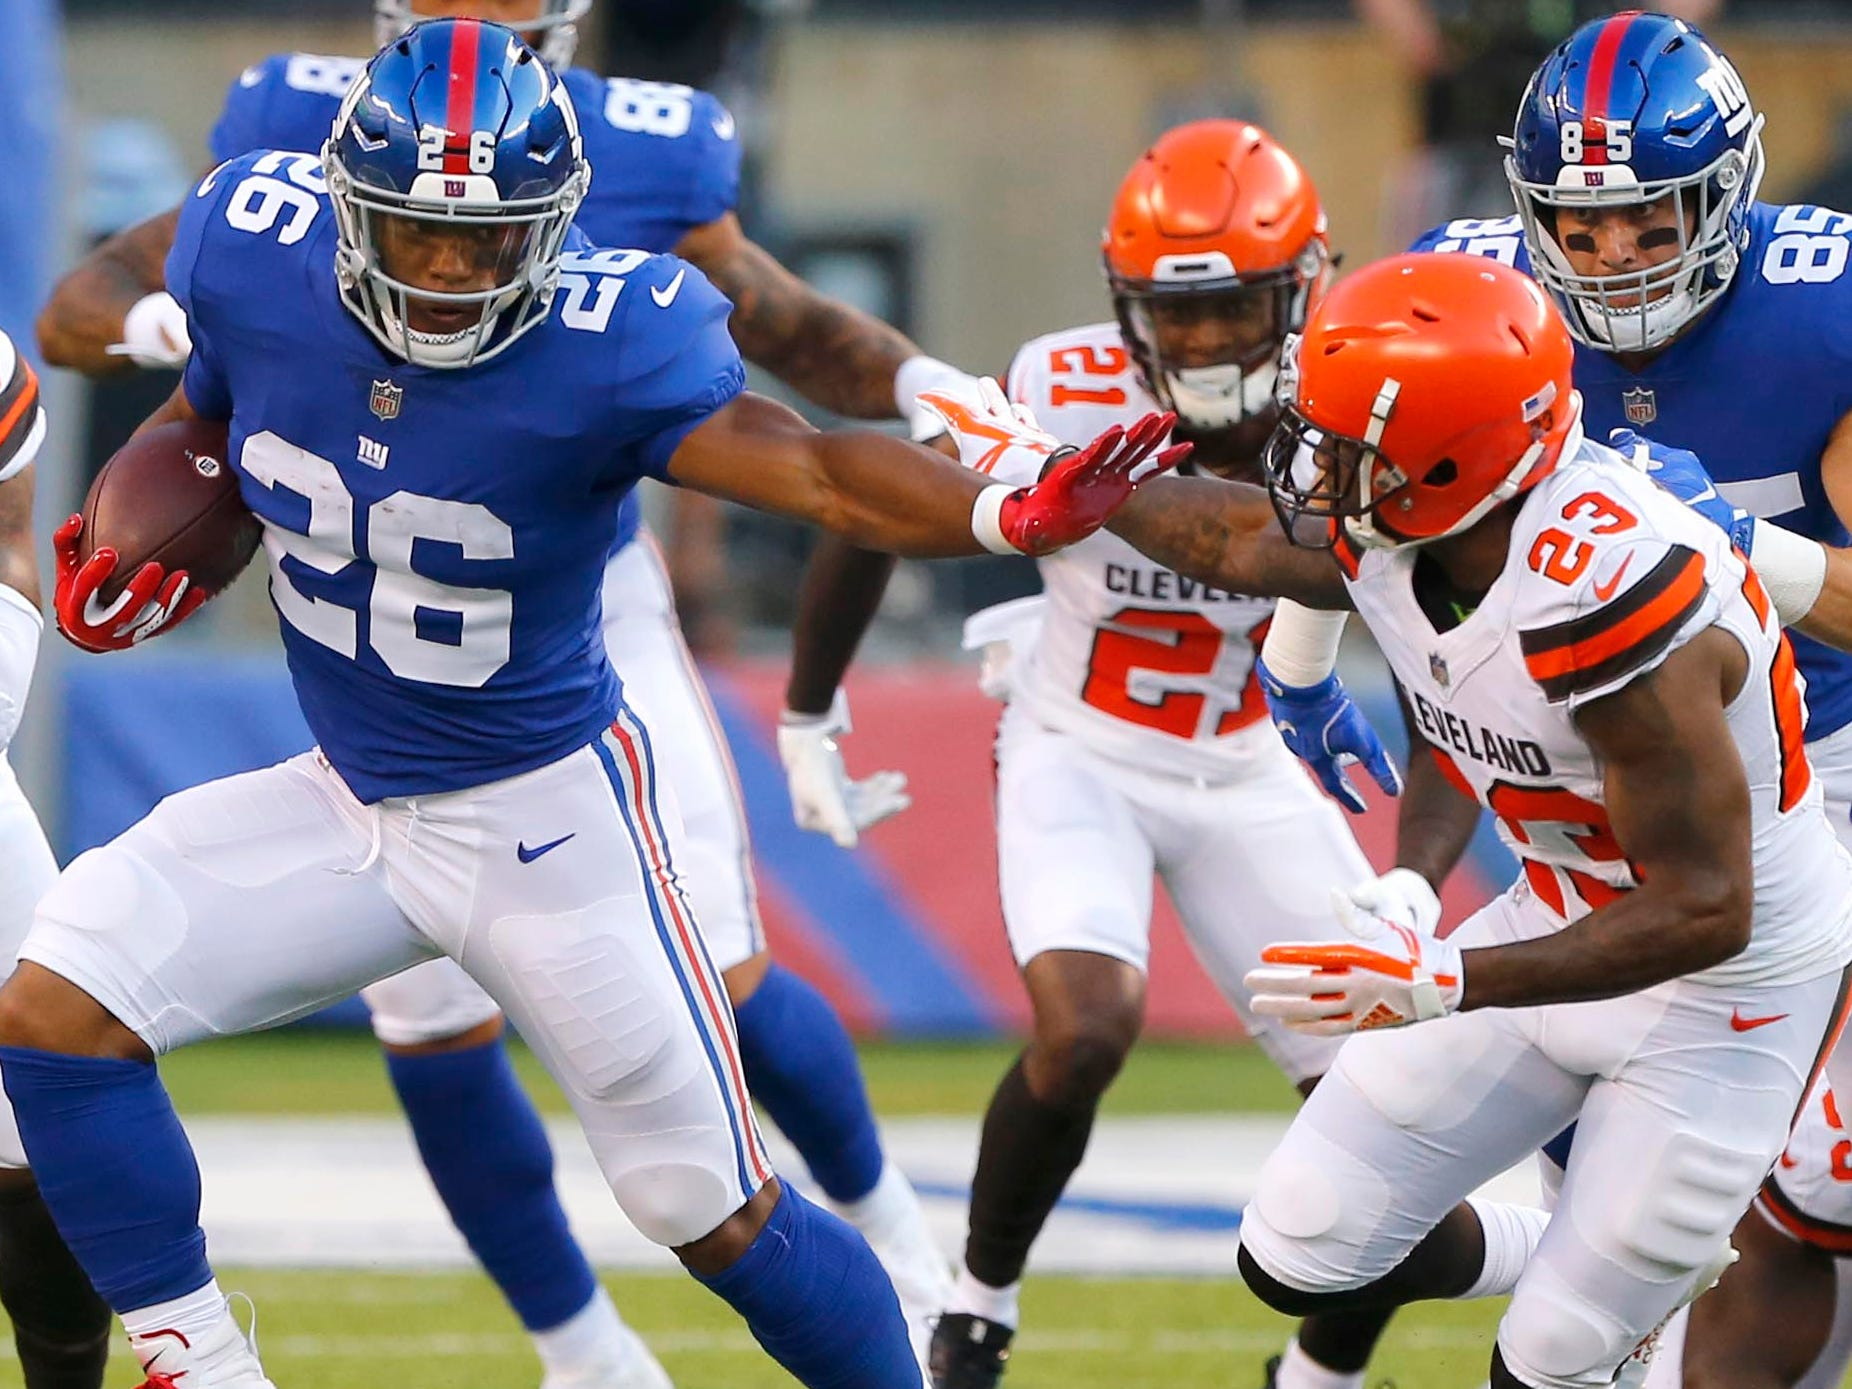 New York Giants running back Saquon Barkley (26) rushes against Cleveland Browns defensive back Damarious Randall (23) during first half at MetLife Stadium.